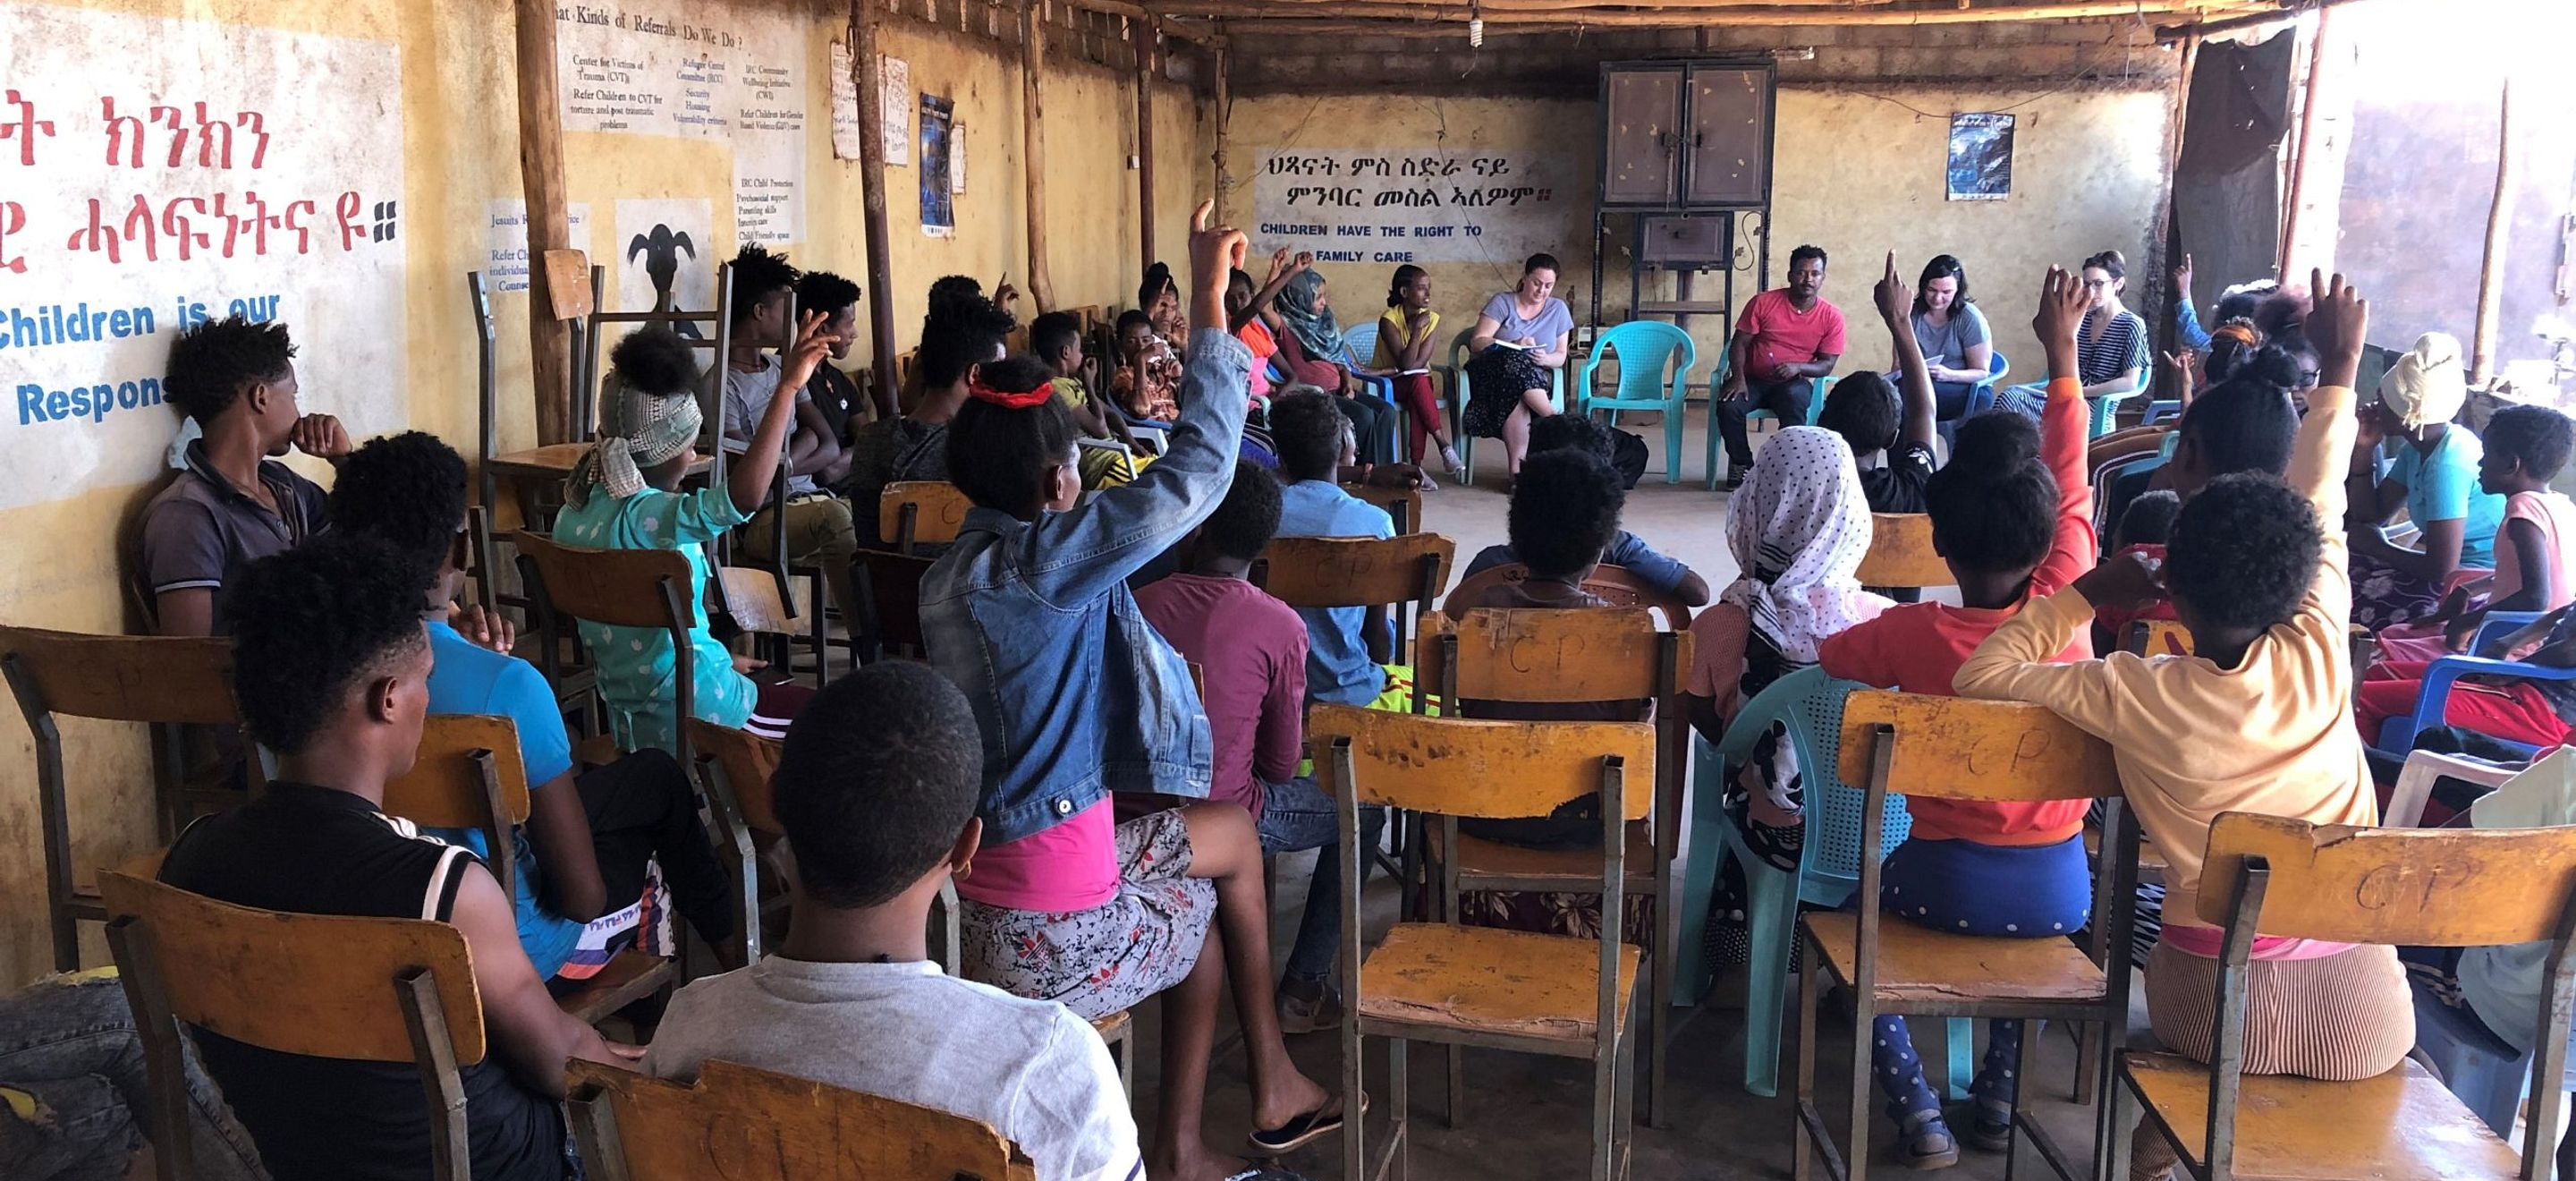 Members of IRAP and UNHCR staff meet with unaccompanied refugee children in a classroom in a northern Ethiopian refugee camp. The children sit in rows of chairs facing the staff. Several of them have their hands raised.